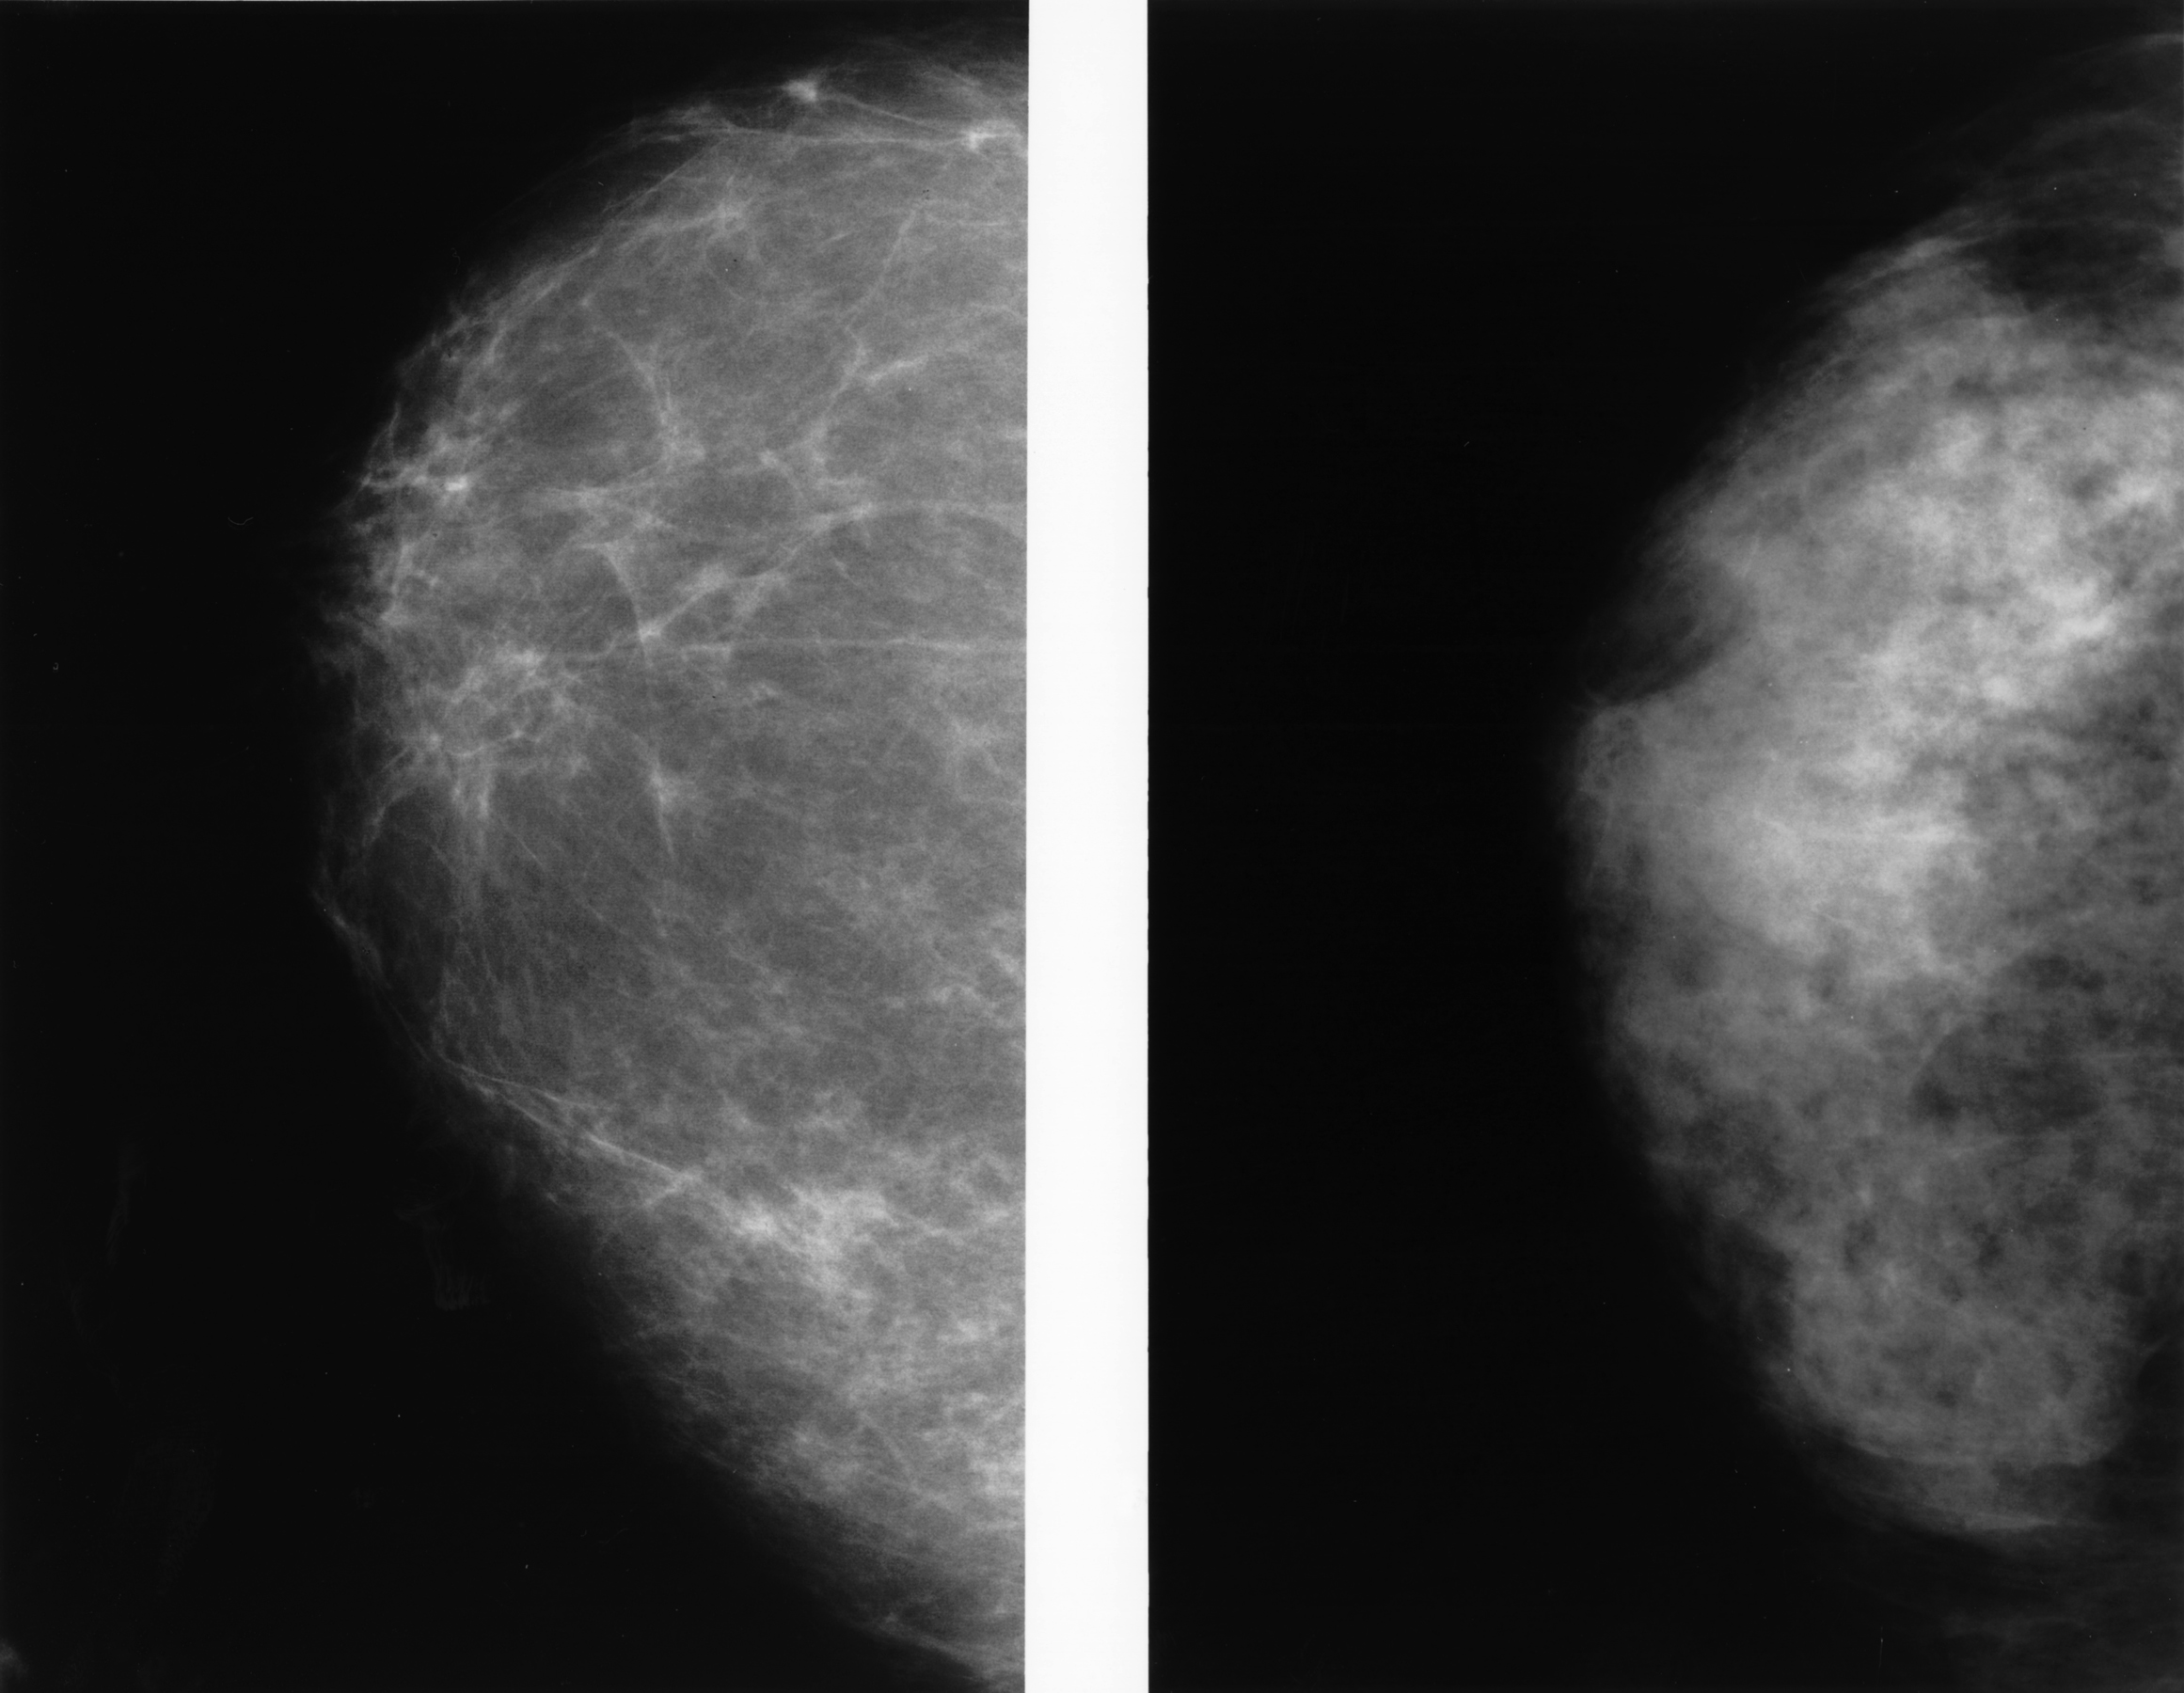 Why Don't More Doctors See Dense Breasts As Risk for Cancer?